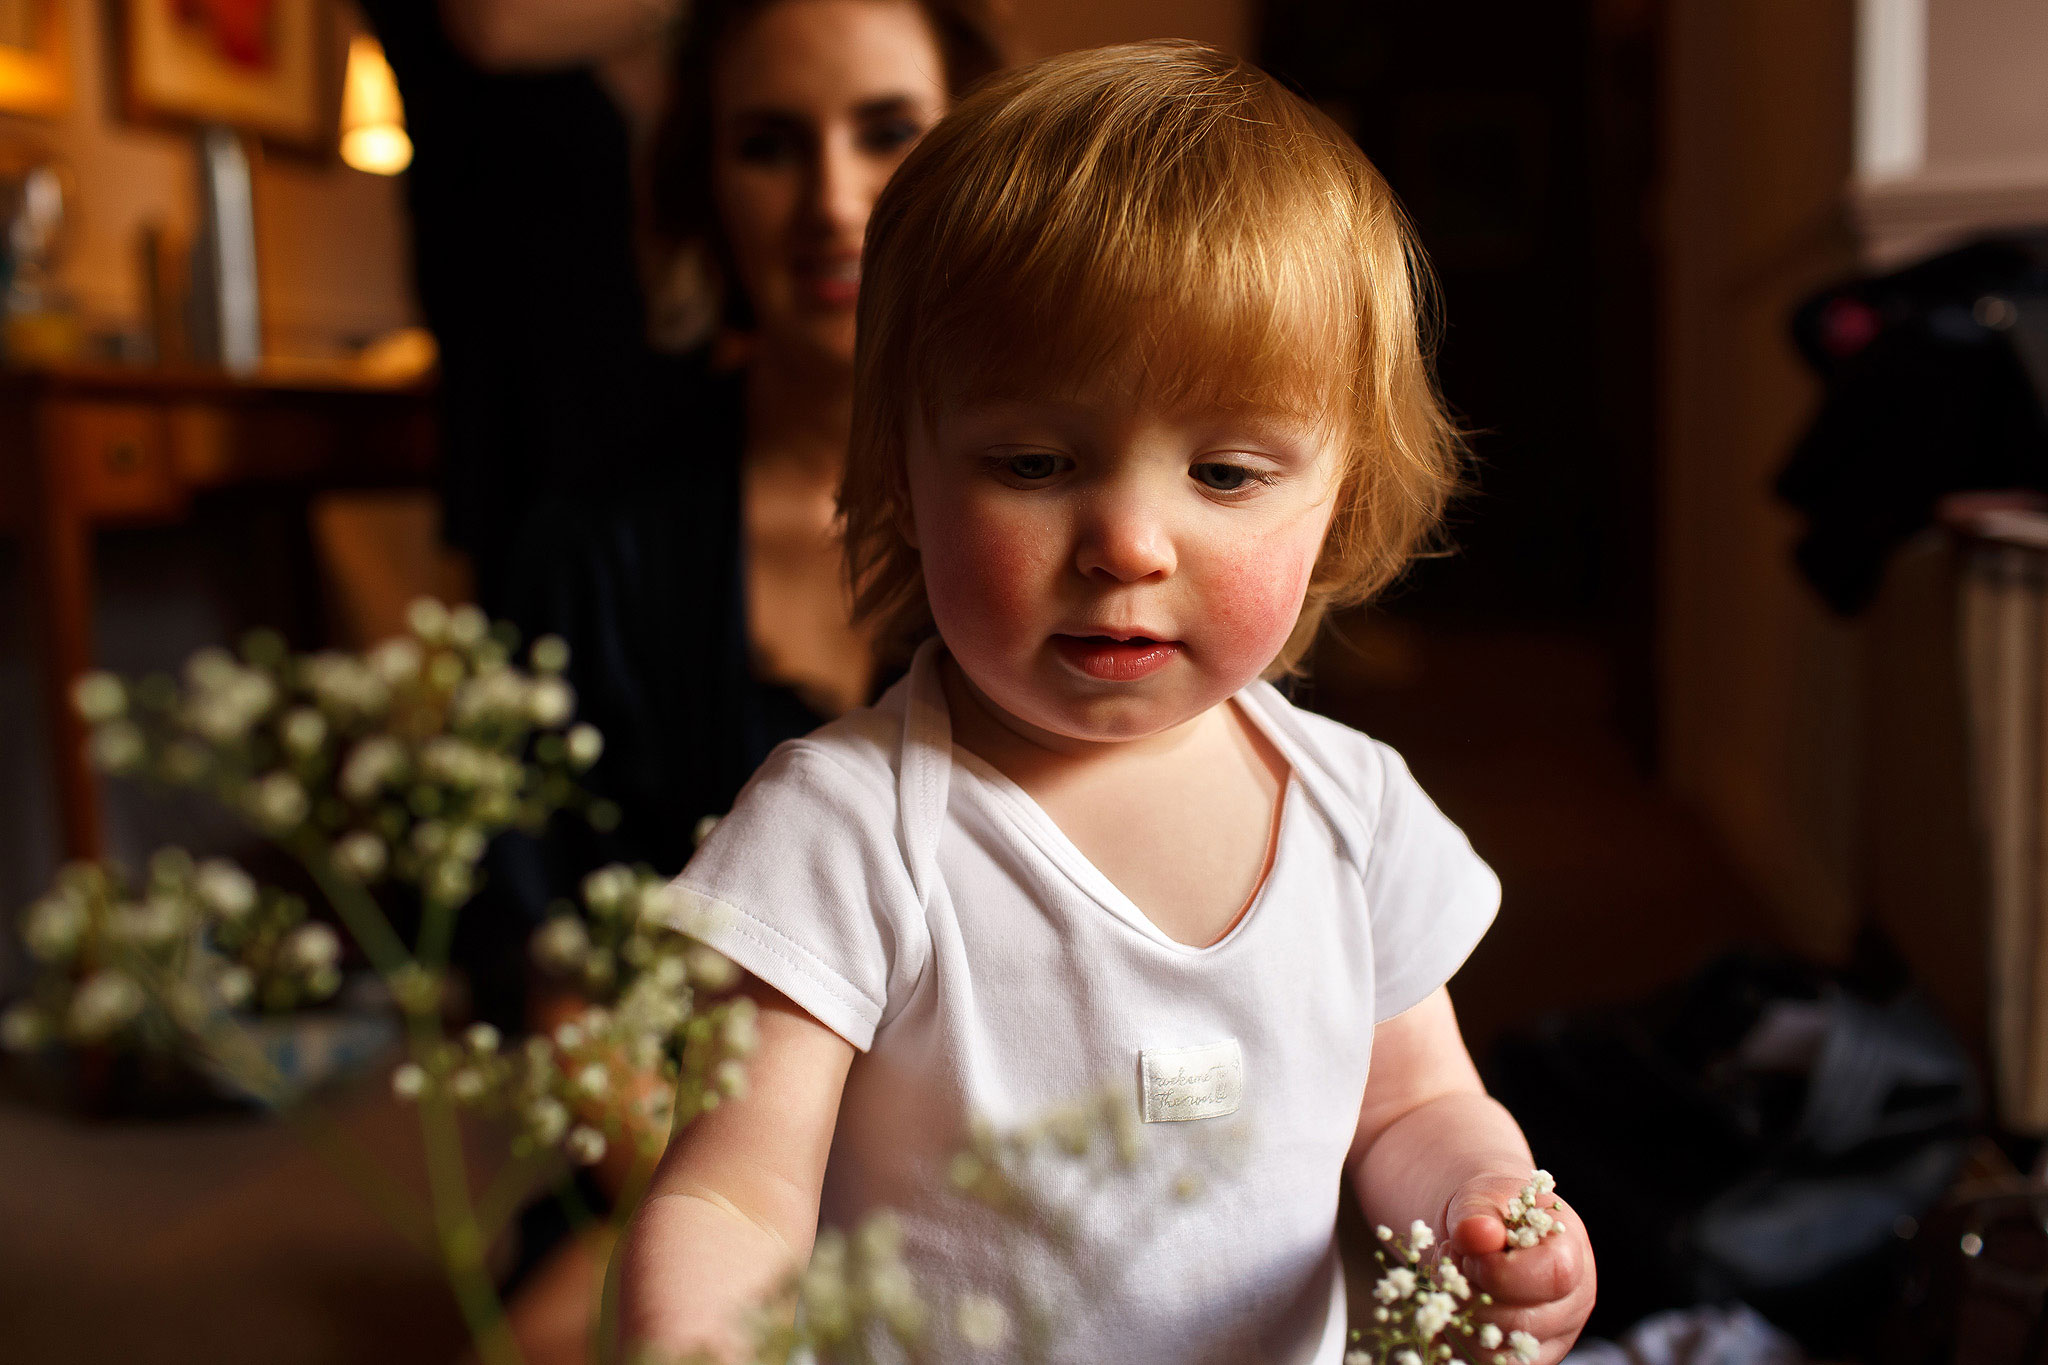 Flower girl with blonde hair looking at wedding flowers